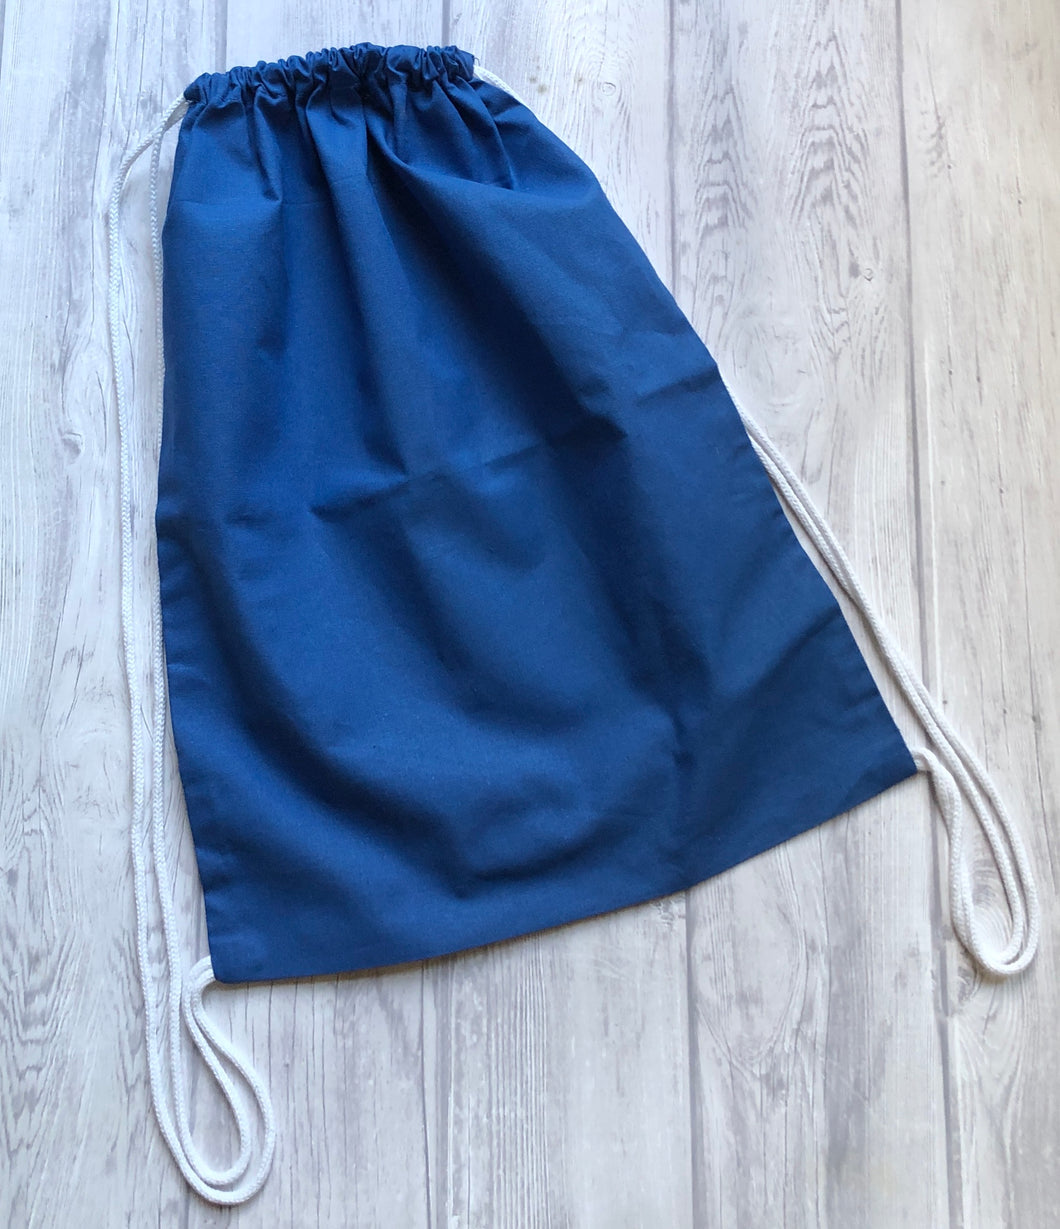 Cotton Drawstring Backpack - Blue